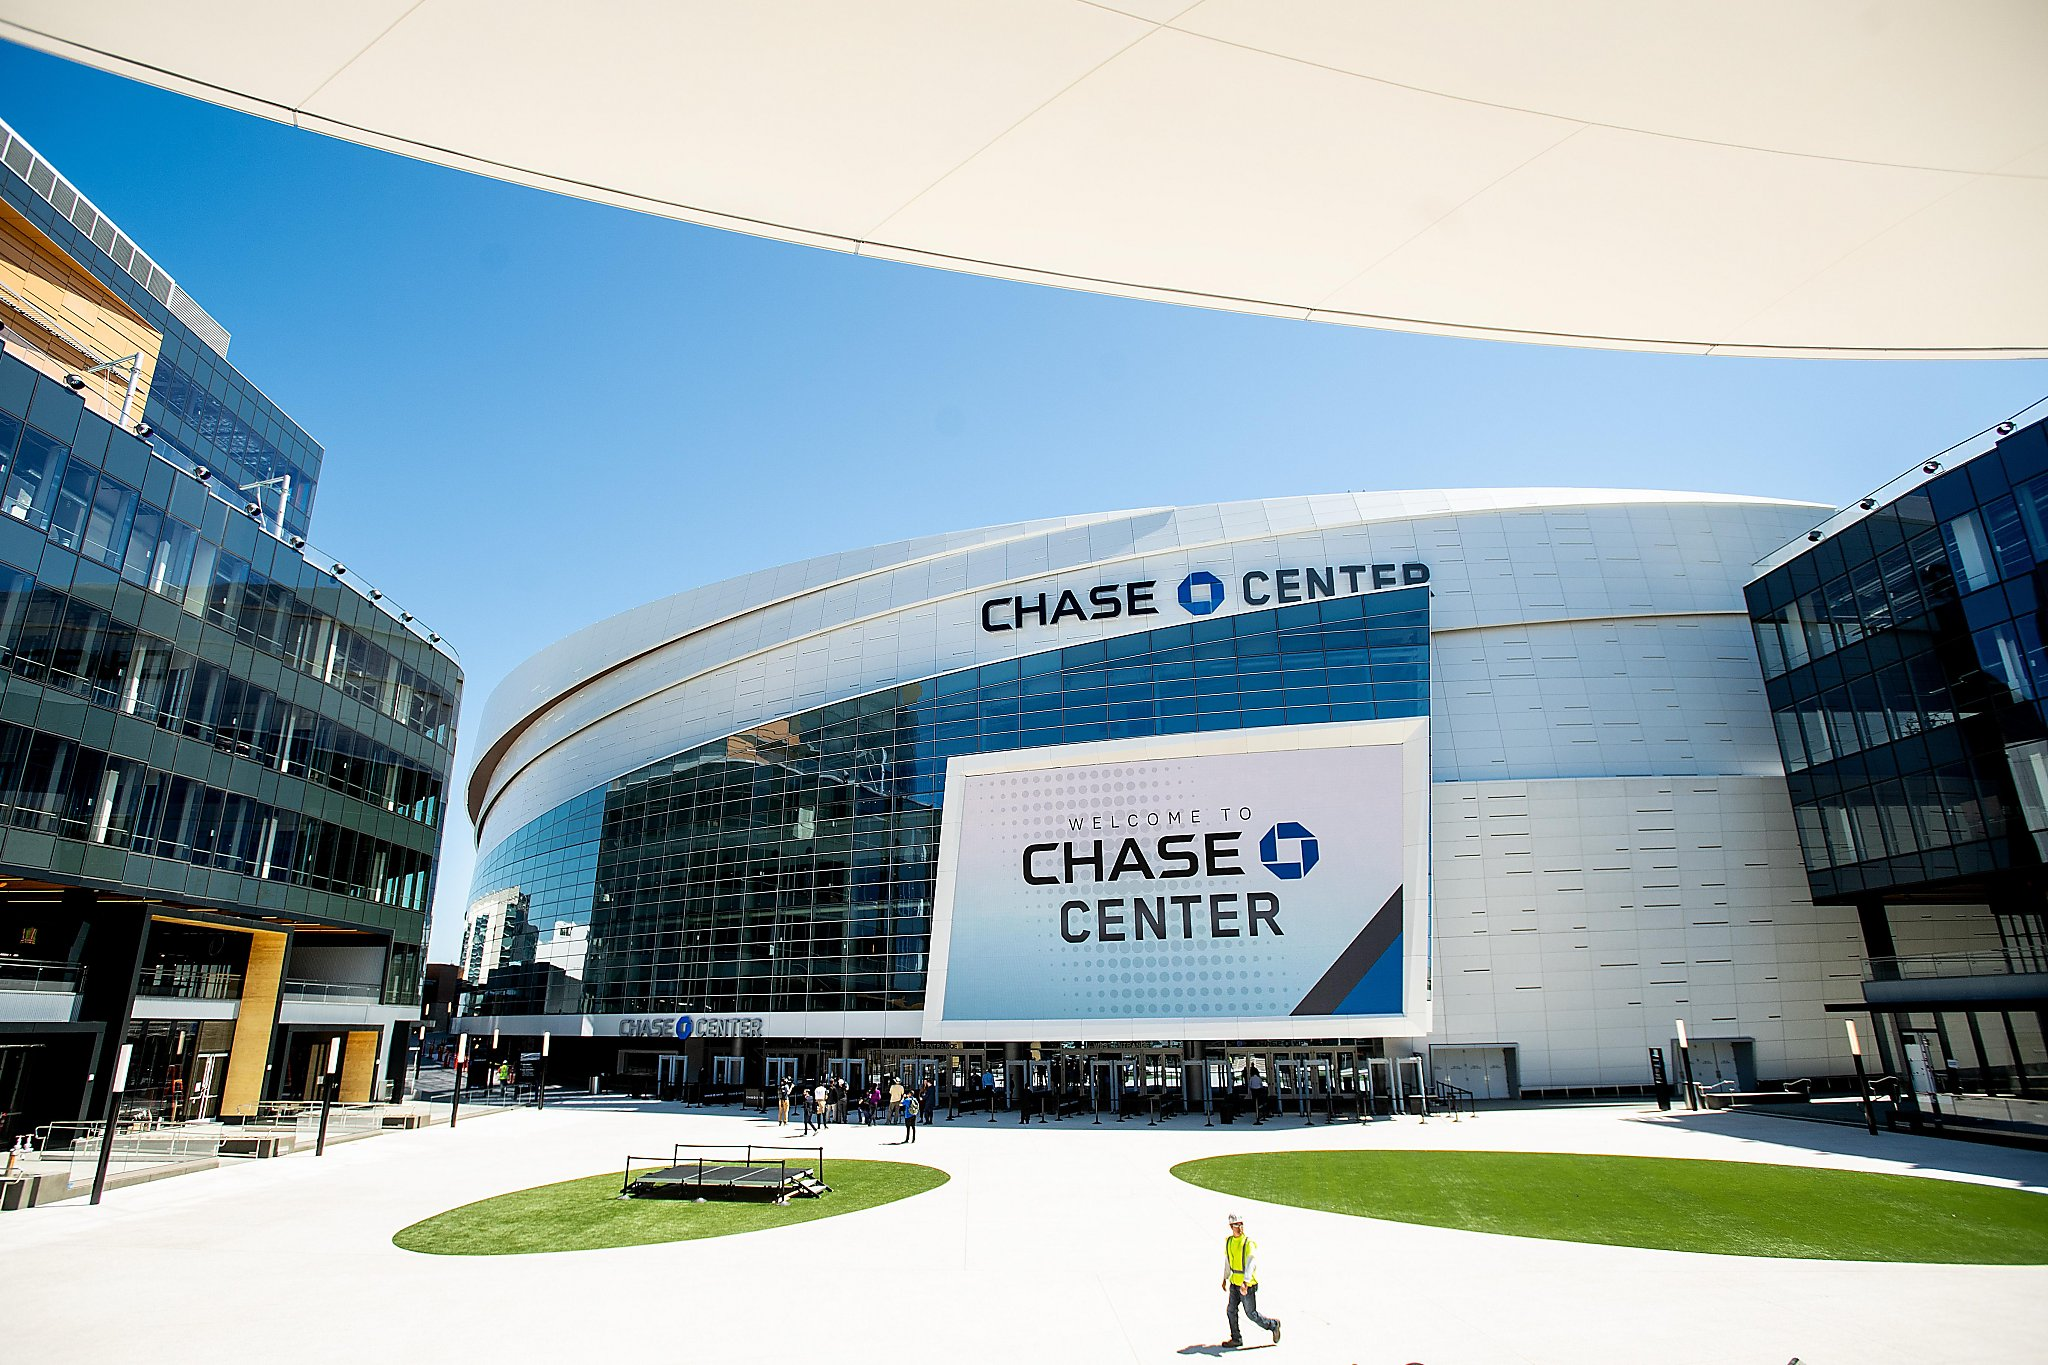 Chase Center has moment in media spotlight, mammoth scoreboard and all